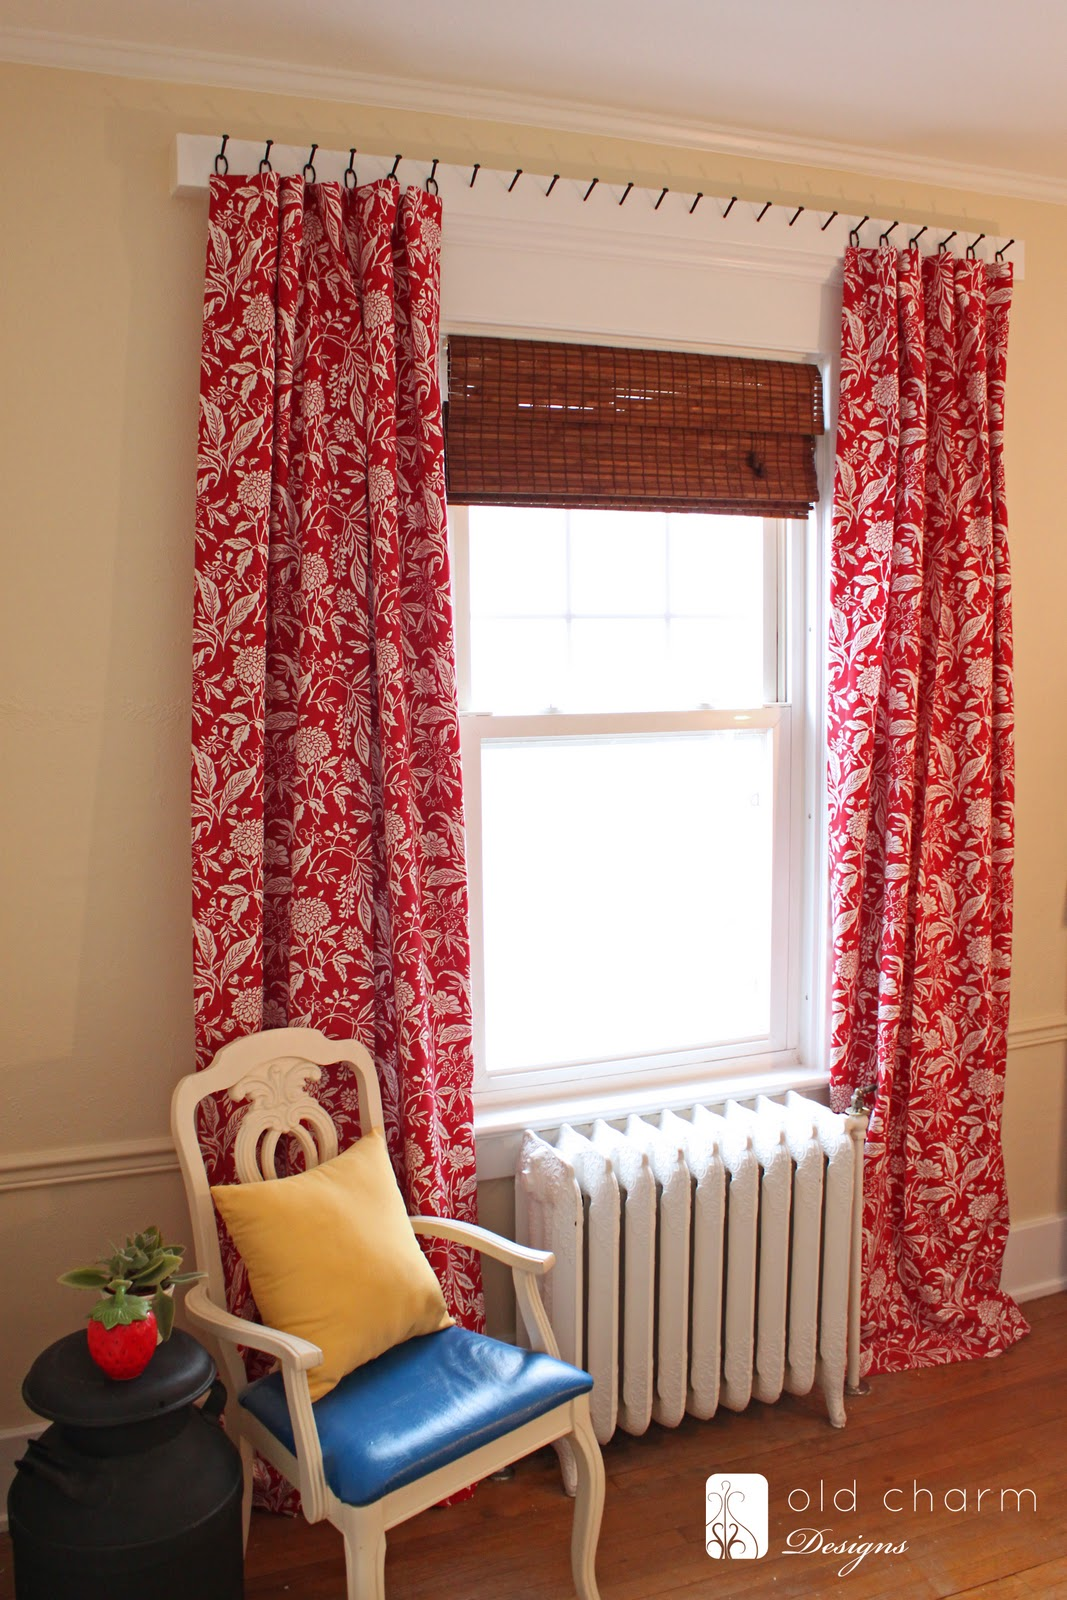 Pictures Of Bay Windows With Curtains Bedroom Cafe Curtain Designs